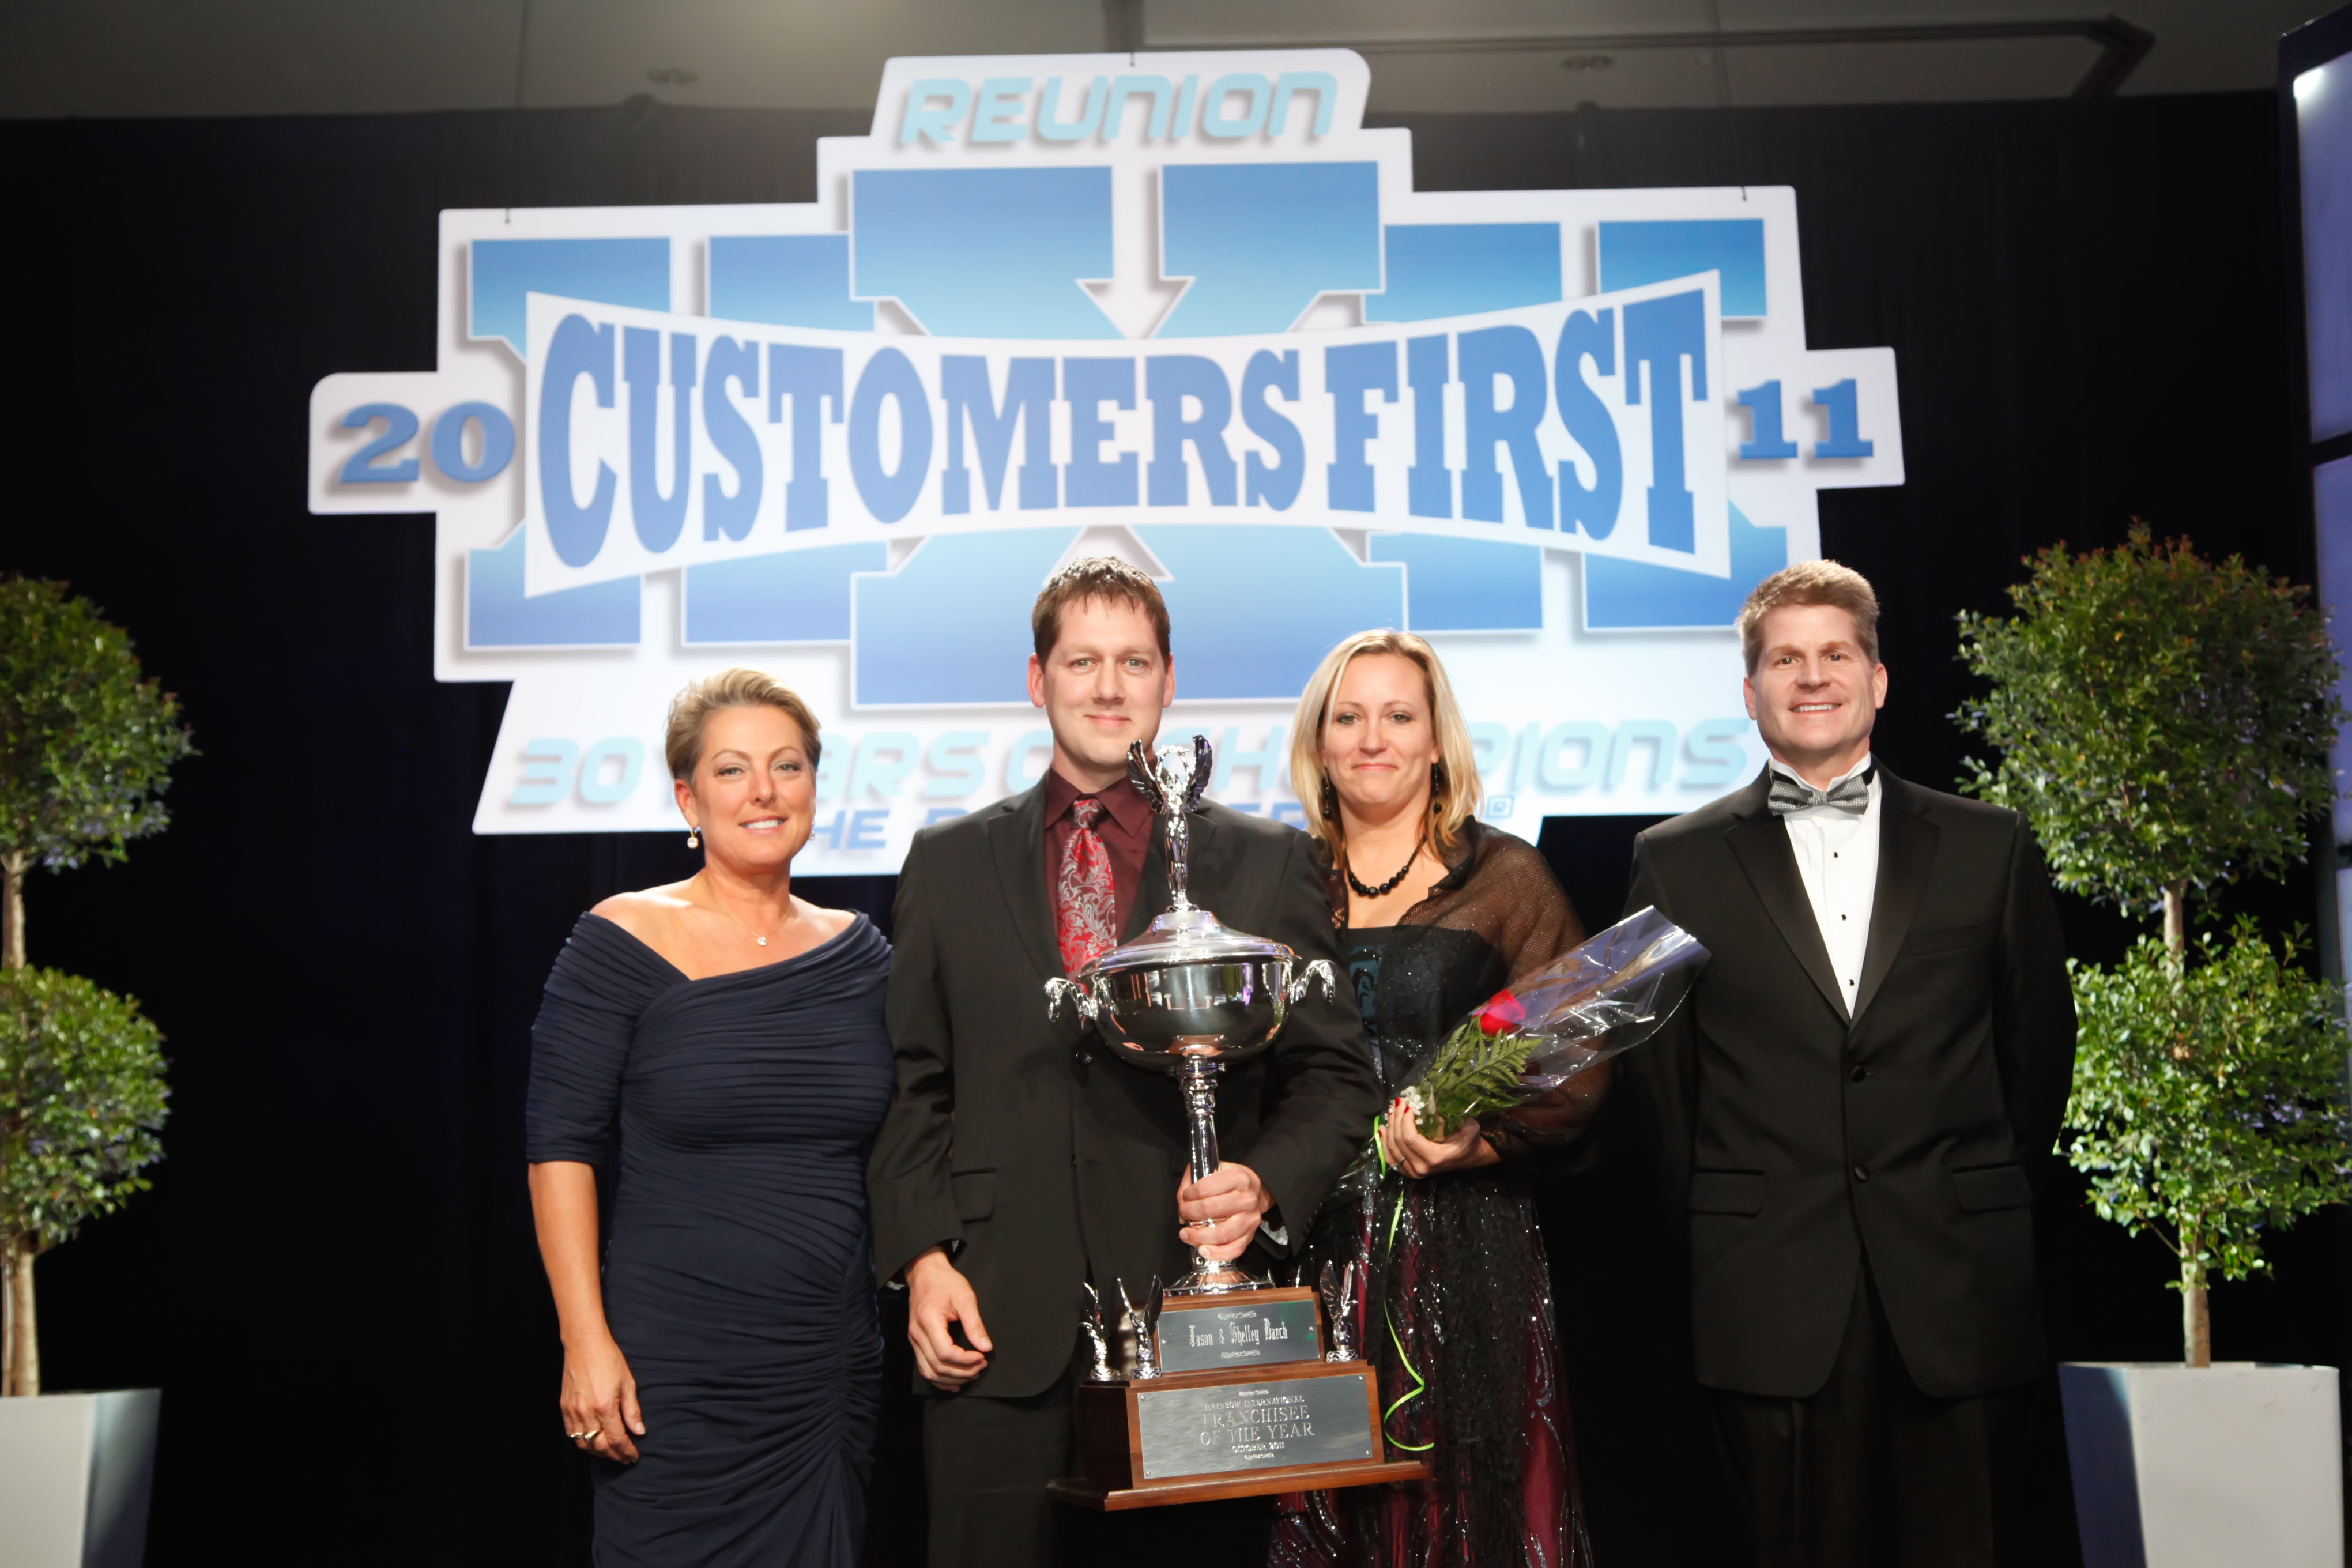 Left to Right: Dina Dwyer-Owens, CEO of The Dwyer Group; Jason & Shelley Barck, Franchisees of the Year Rainbow International of Des Moines; Rob White, President of Rainbow International